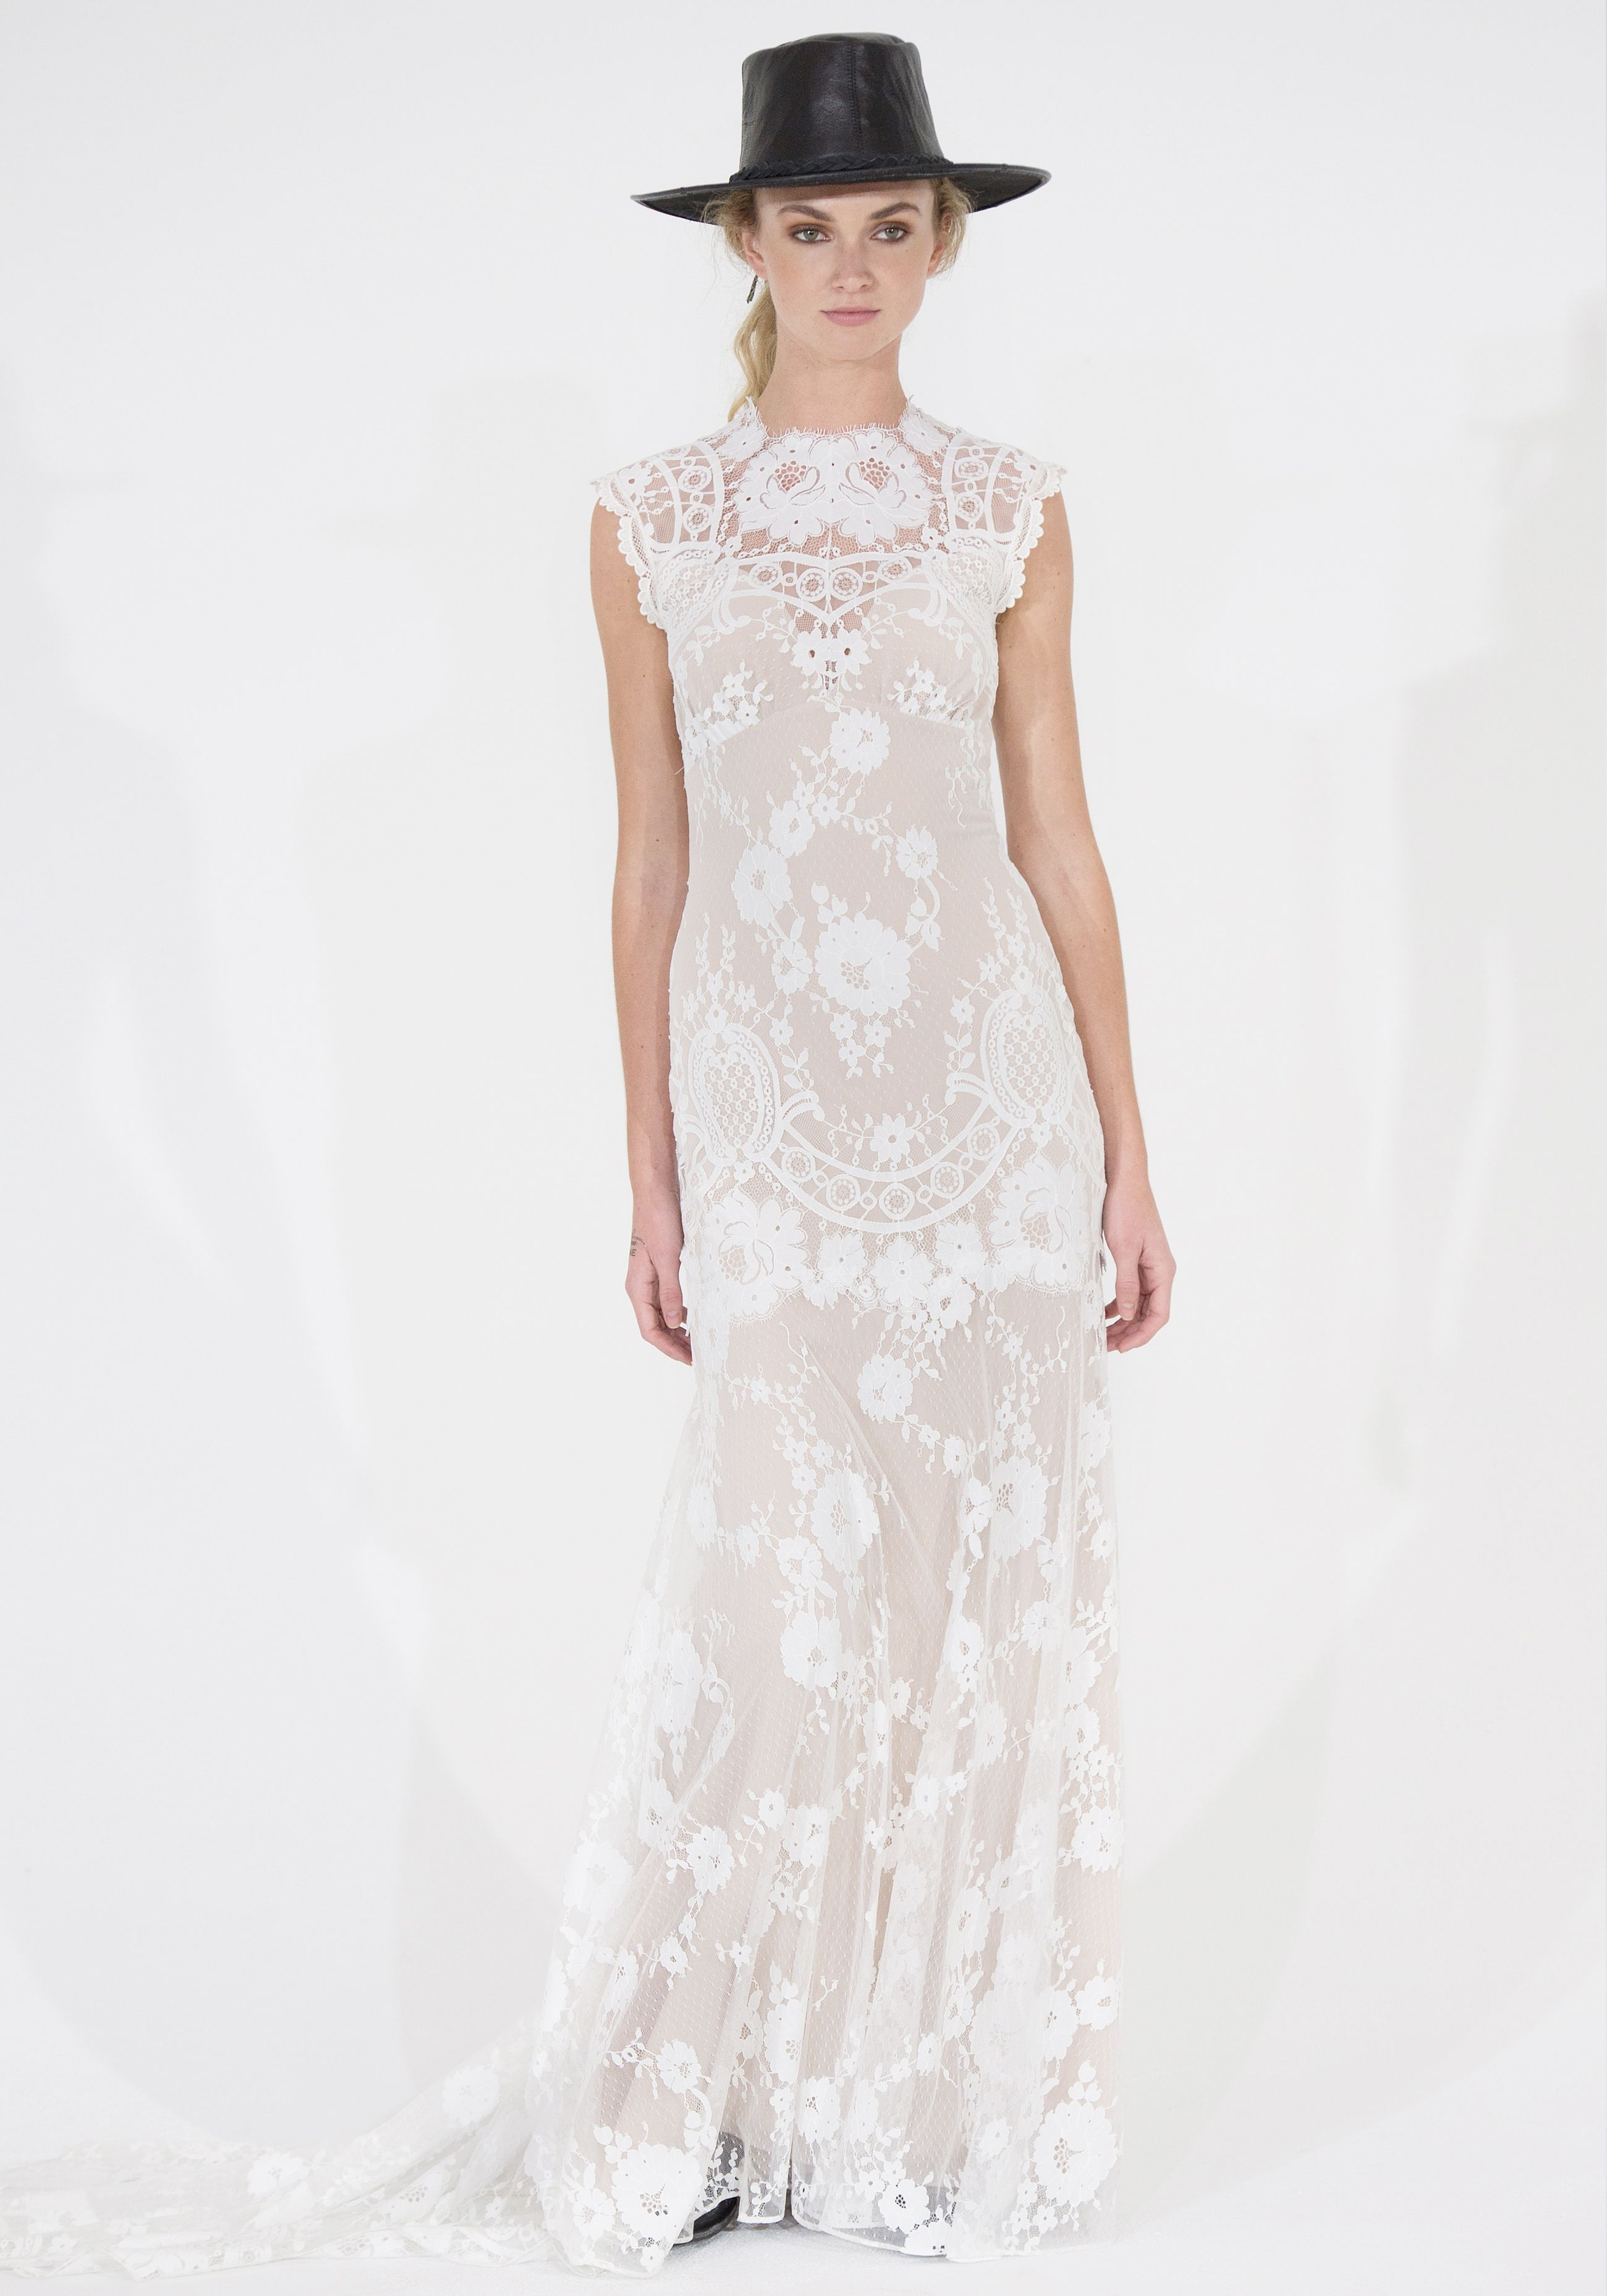 The Cheyenne Gown From Wedding Dress Designer Clairepettibone Looks Flattering On Any Bride Especially